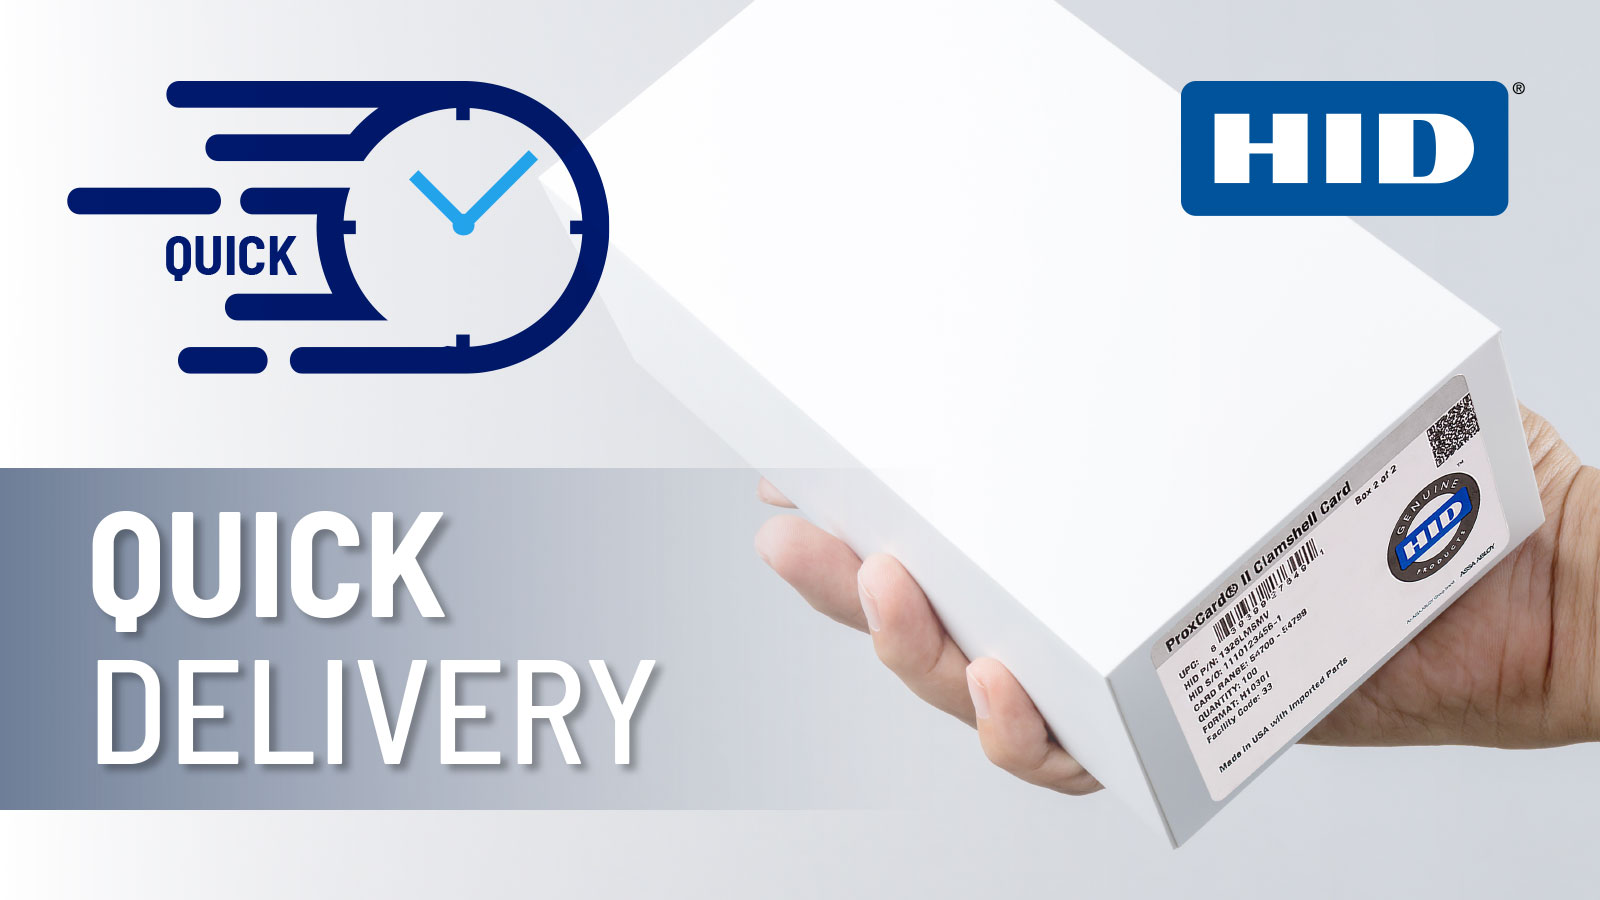 HID Access Cards - Quick Delivery